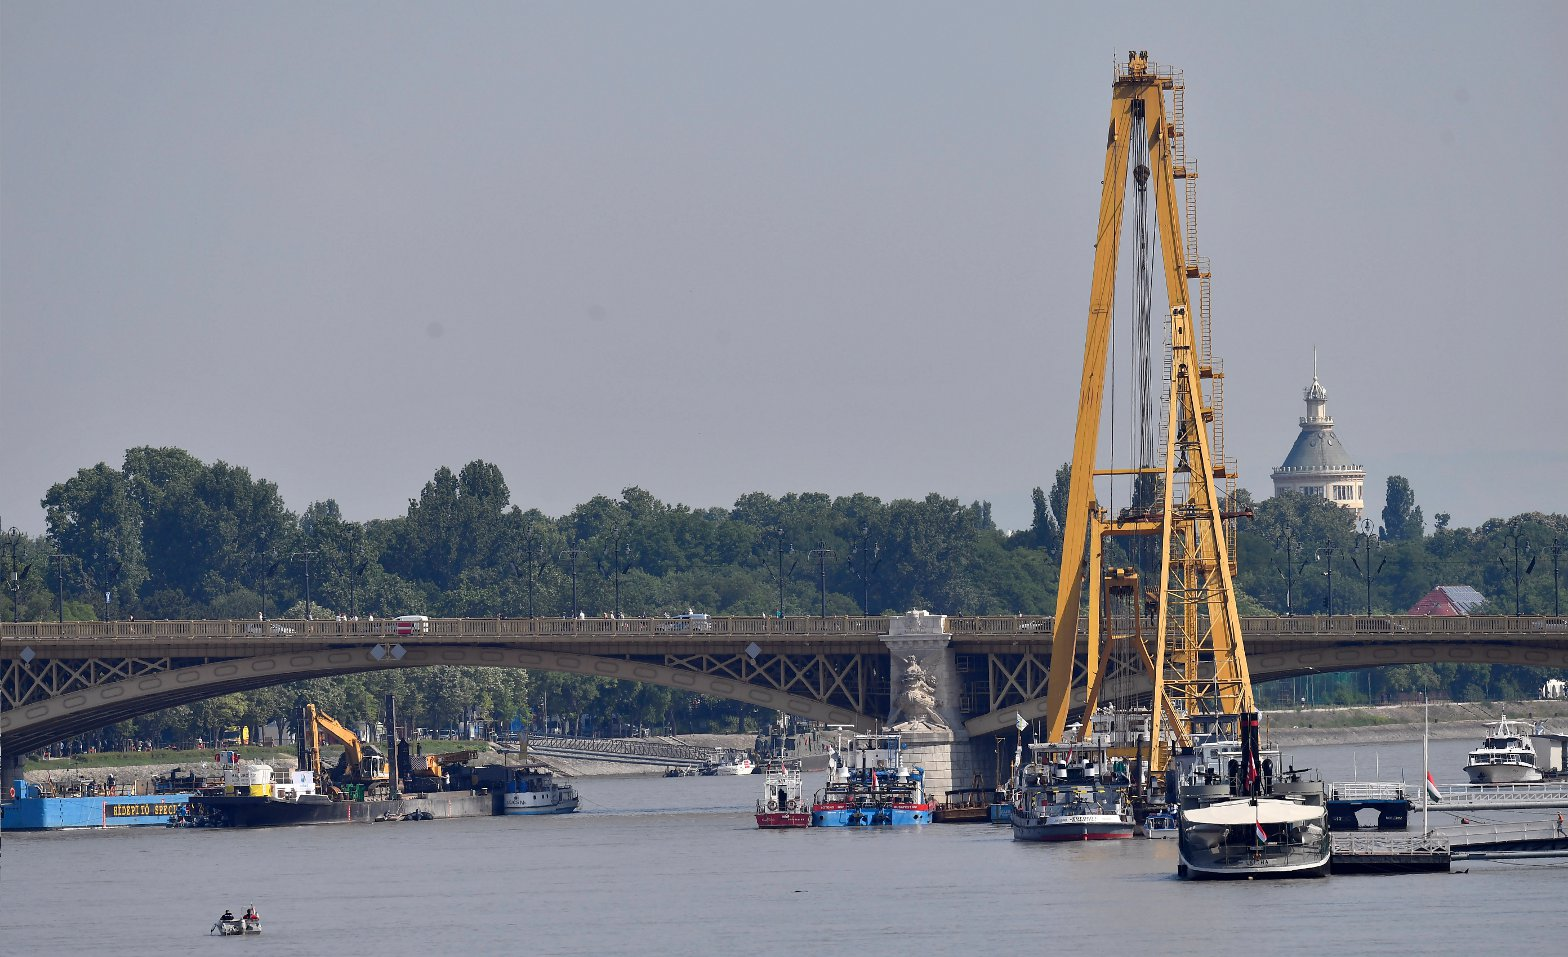 Lifting Of Wreck From Danube In Budapest Expected To Begin This Week